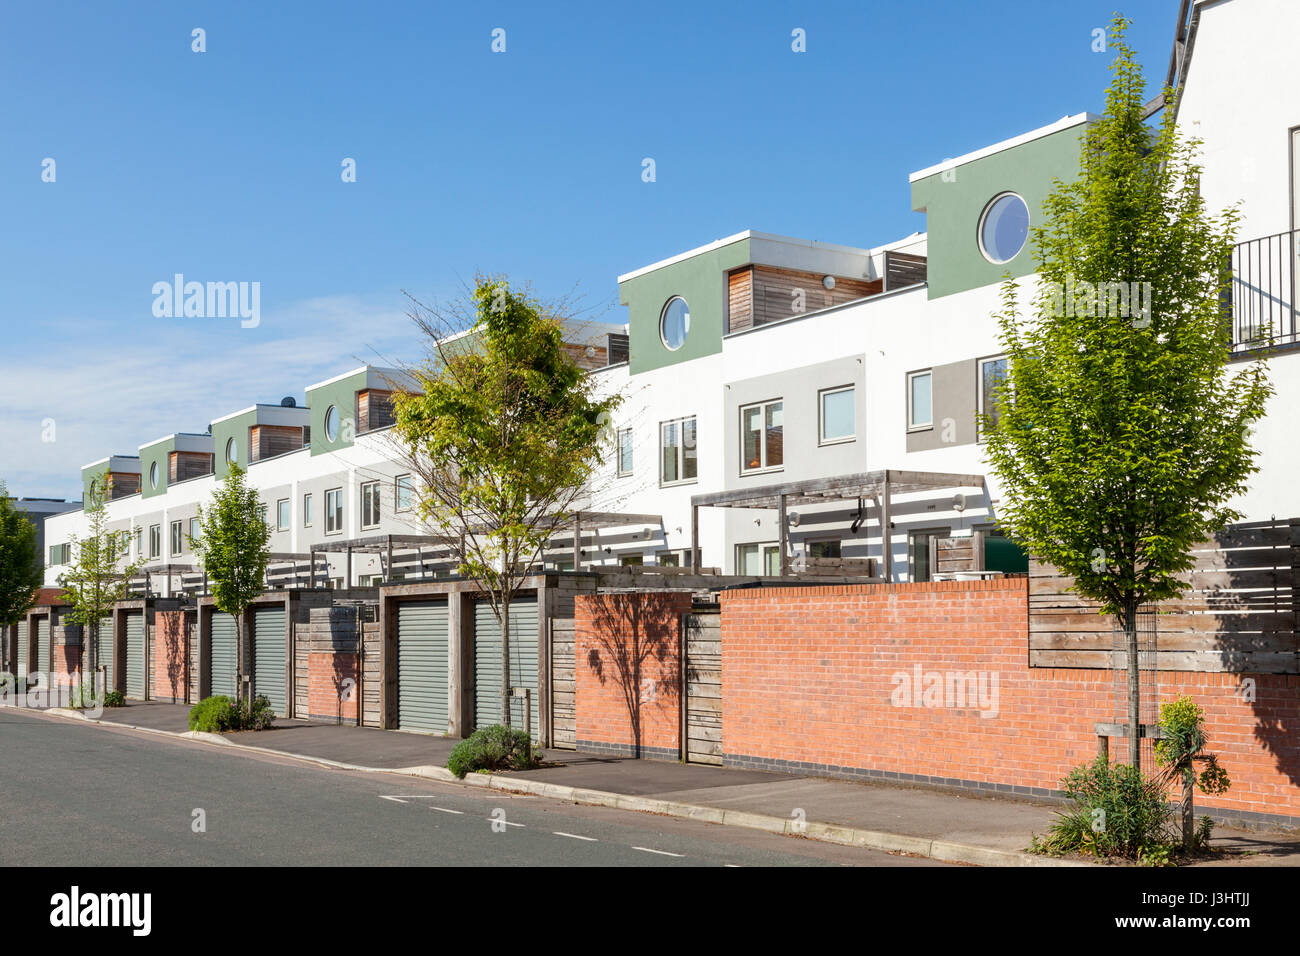 Eco friendly sustainable housing development at Fraser Road and Green Street, Nottingham, England, UK - Stock Image